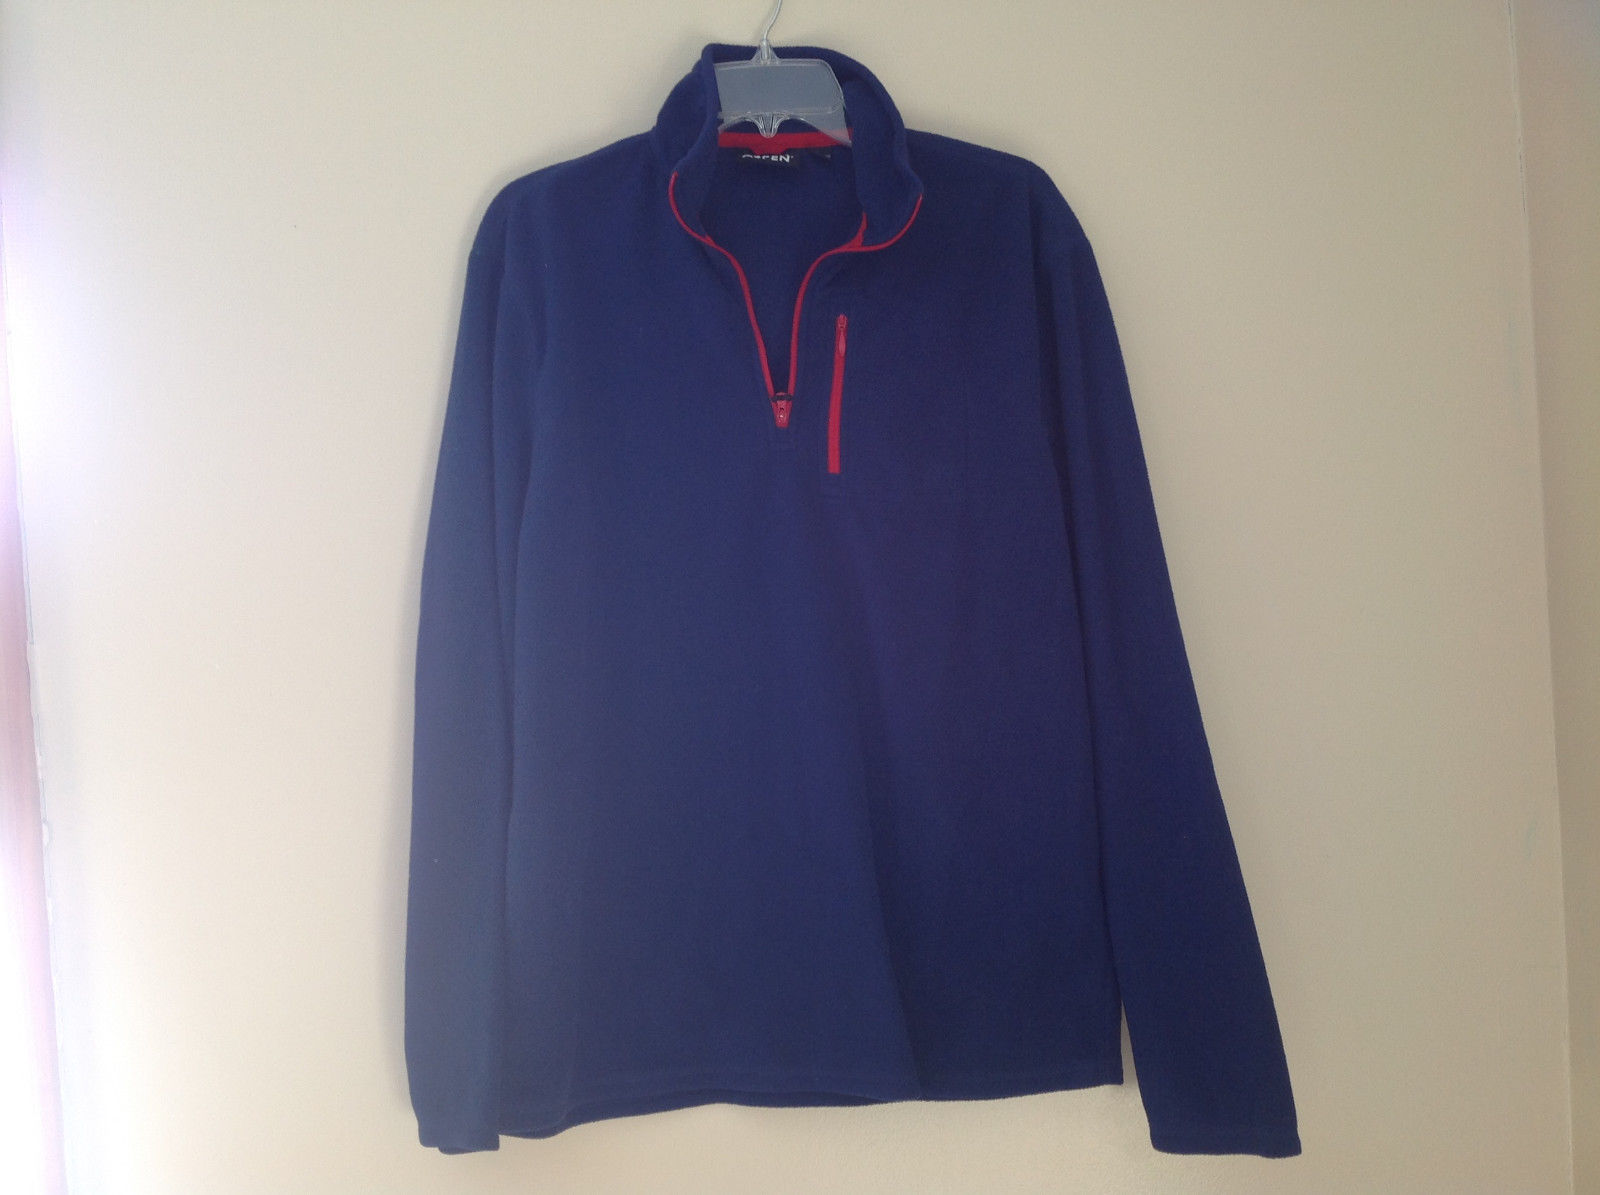 Aspen Navy with Red Zipper Fleece Sweatshirt Zipper at Collar Size Large